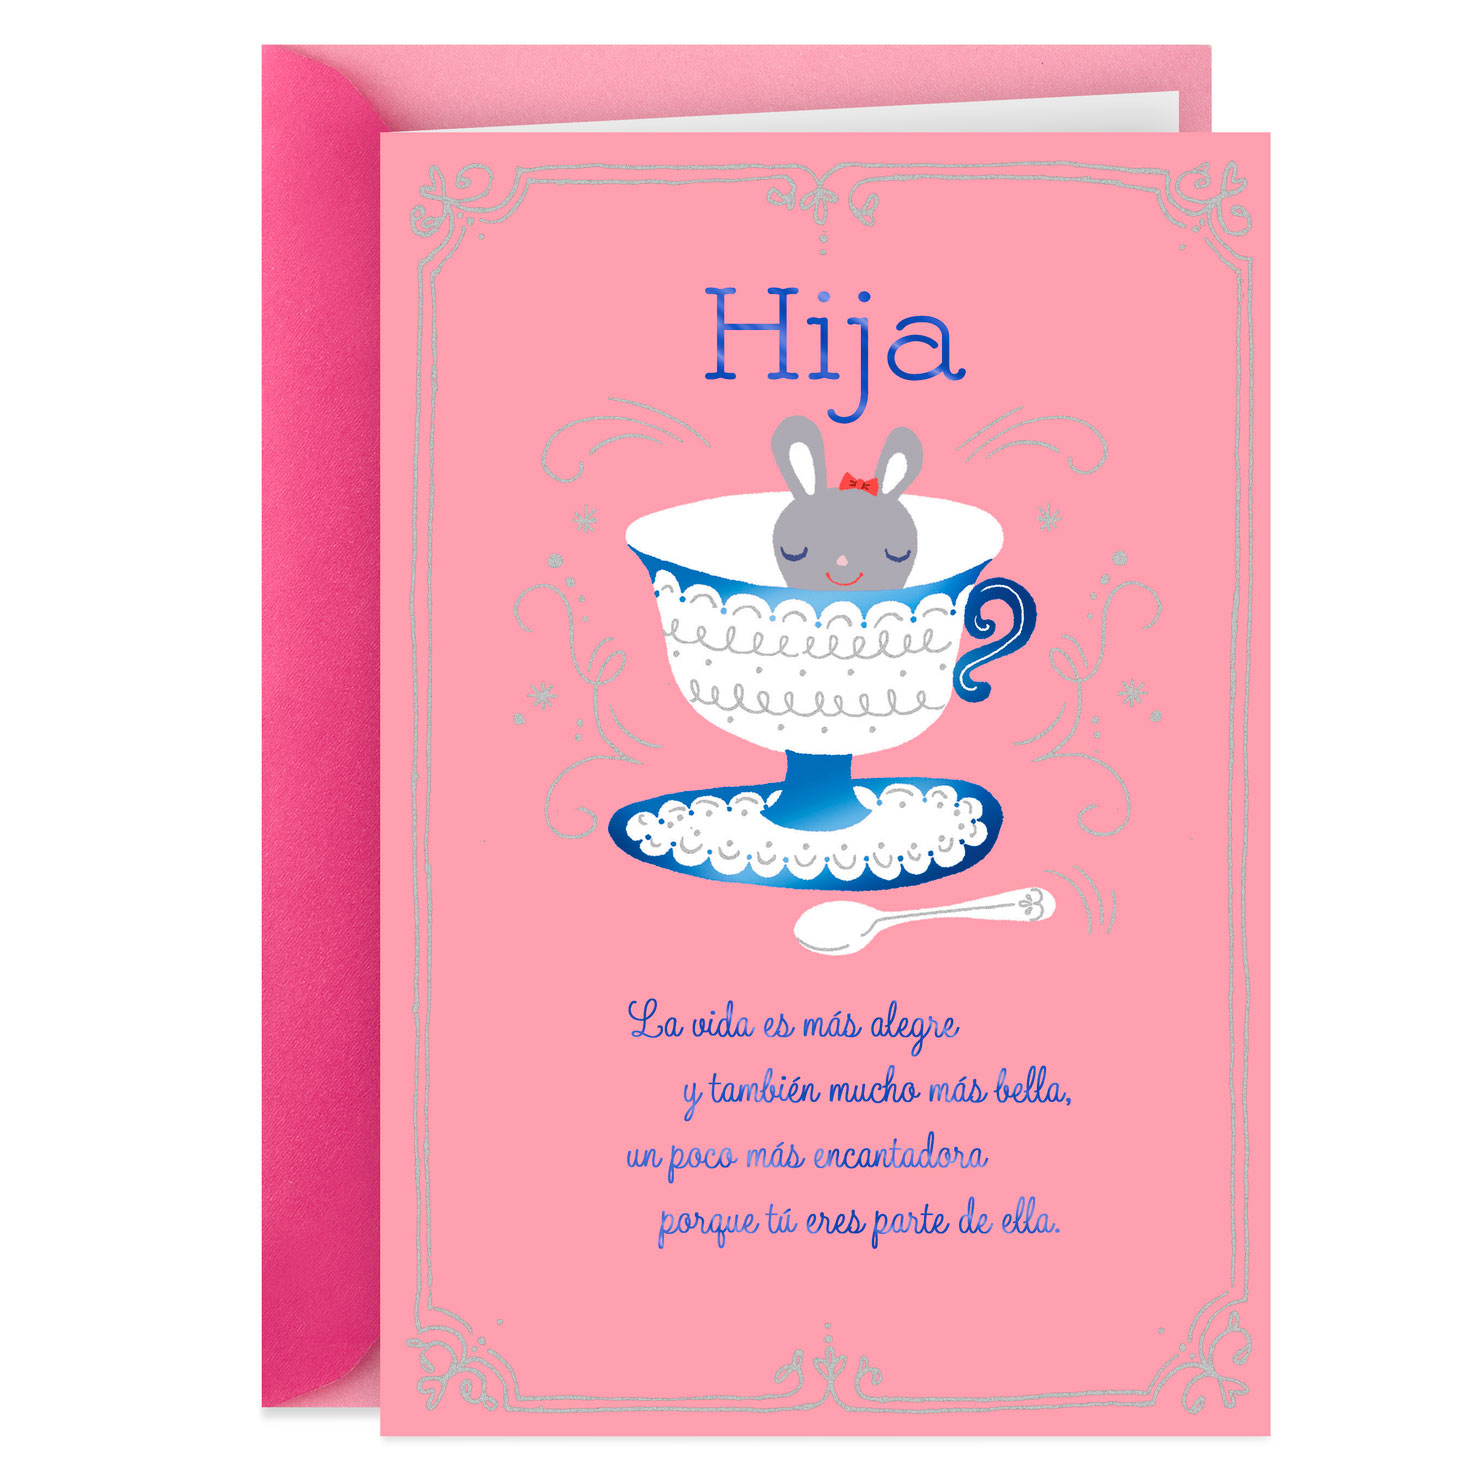 Extra Sweetness Spanish Language Birthday Card For Daughter